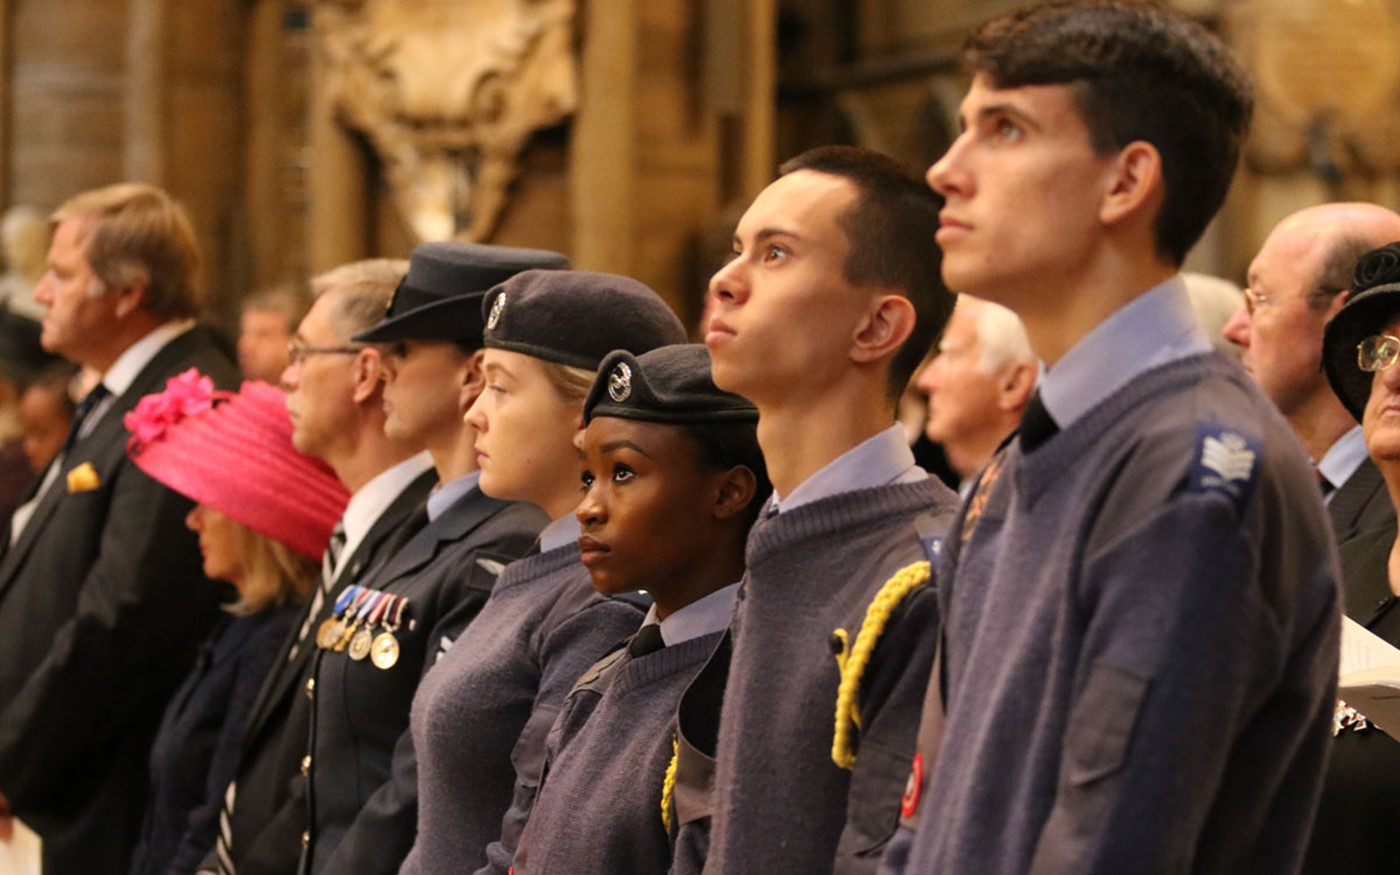 Royal Air Force Cadets at the service